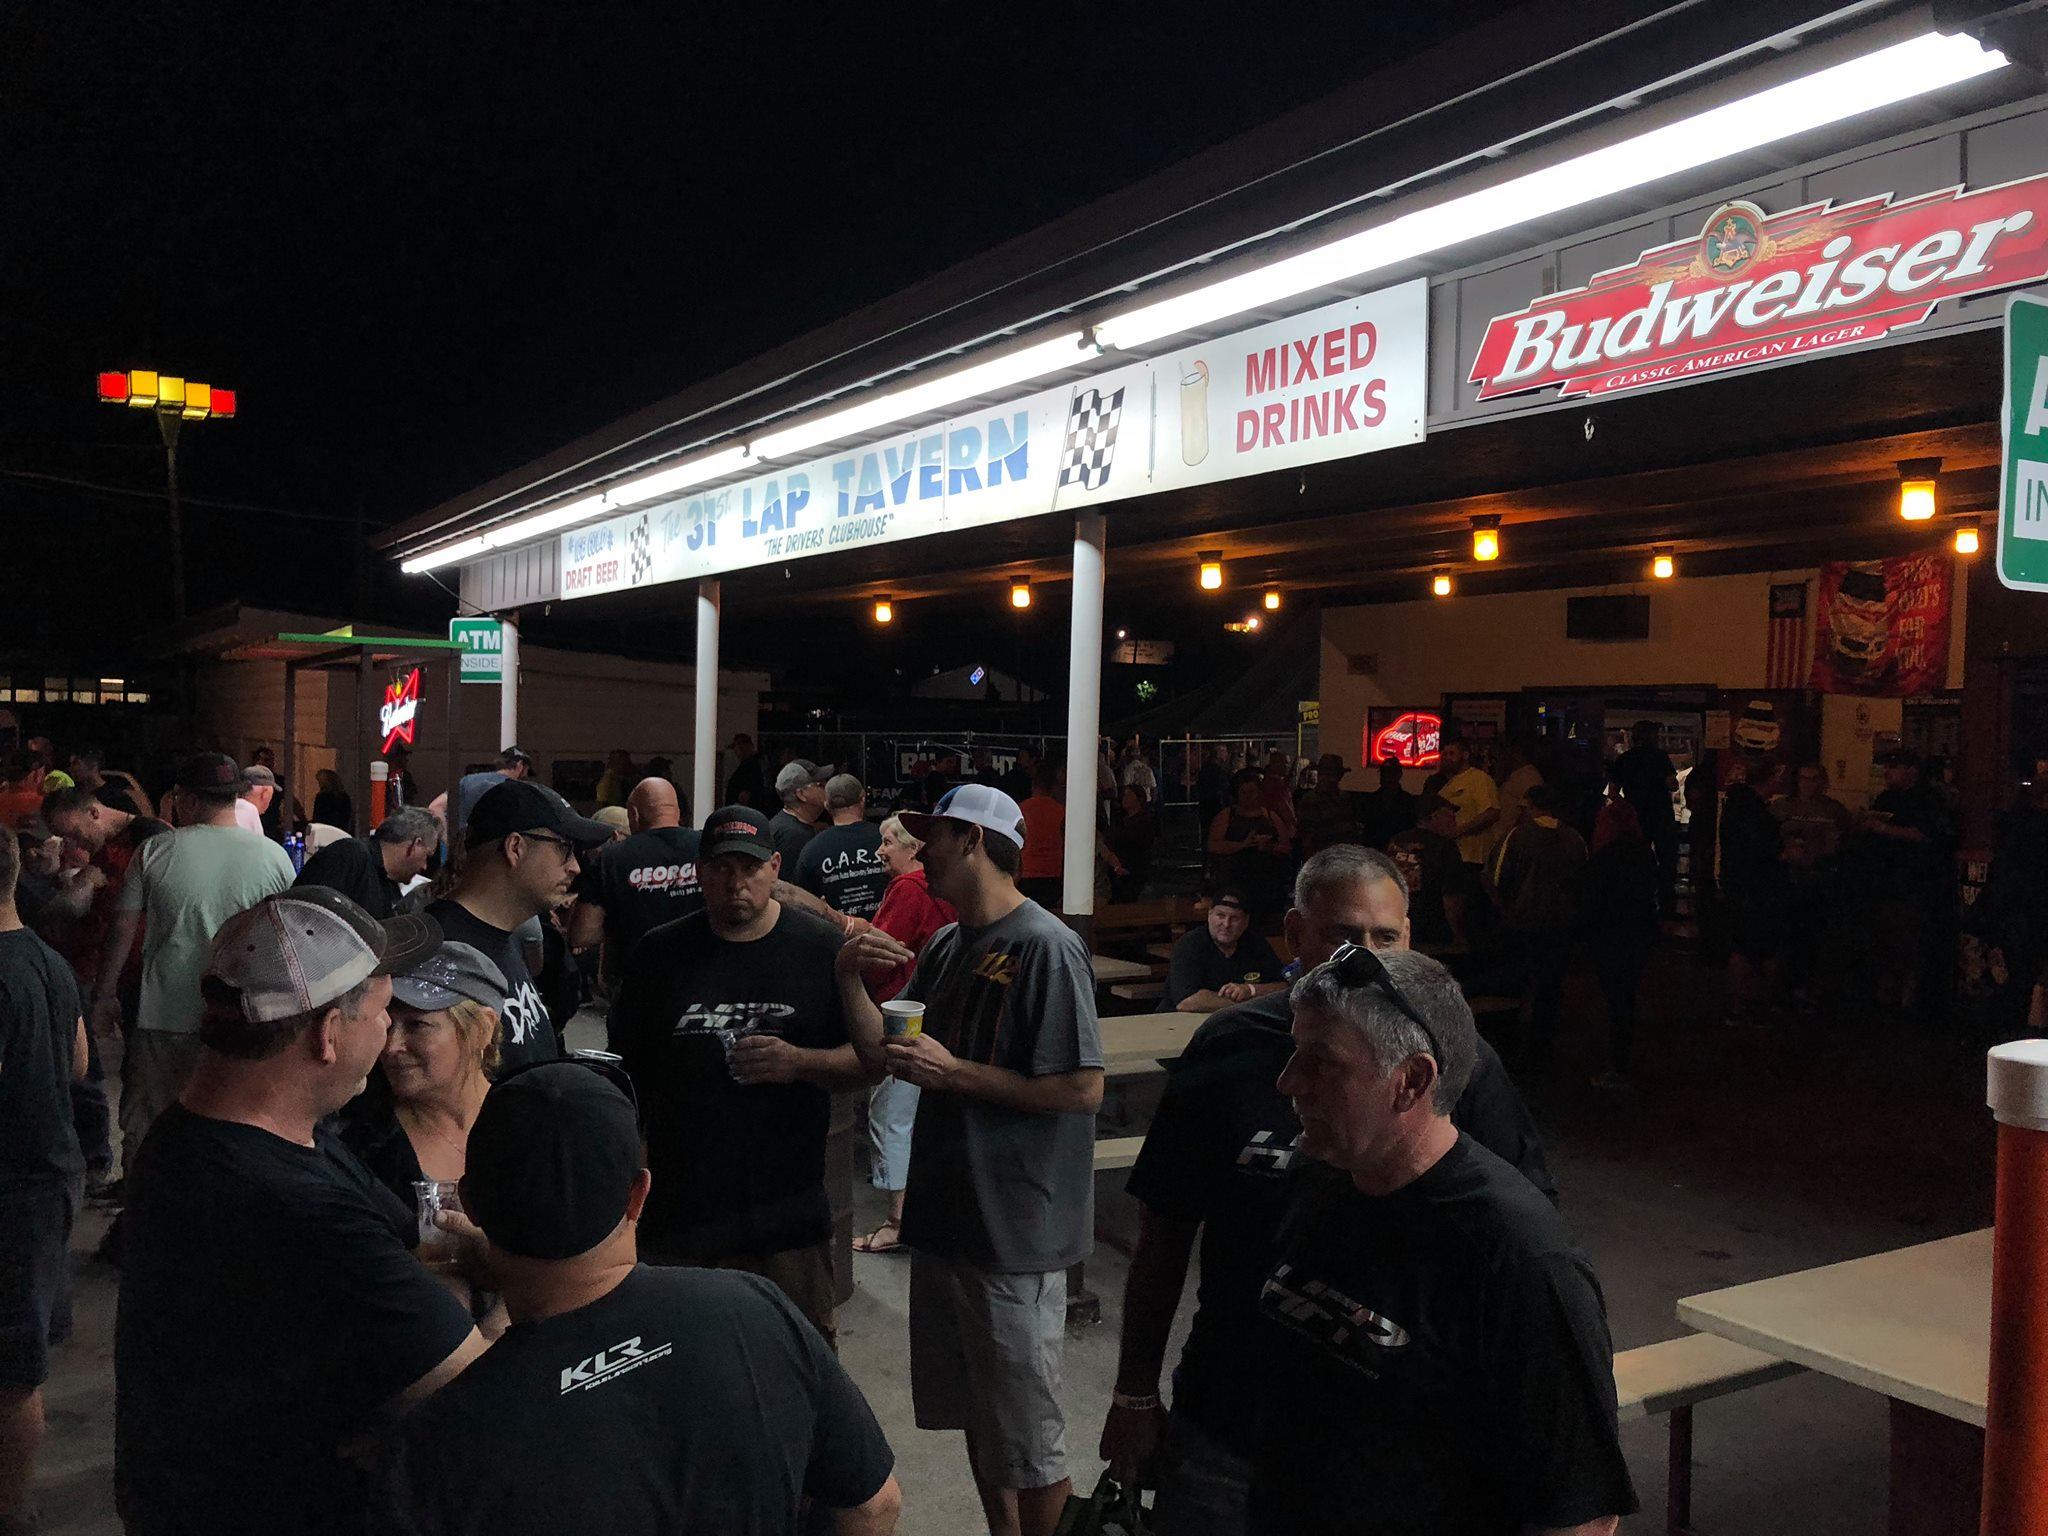 Fans and drivers alike congregate at the 31st Lap Tavern, the Speedway's historic, on-site bar!